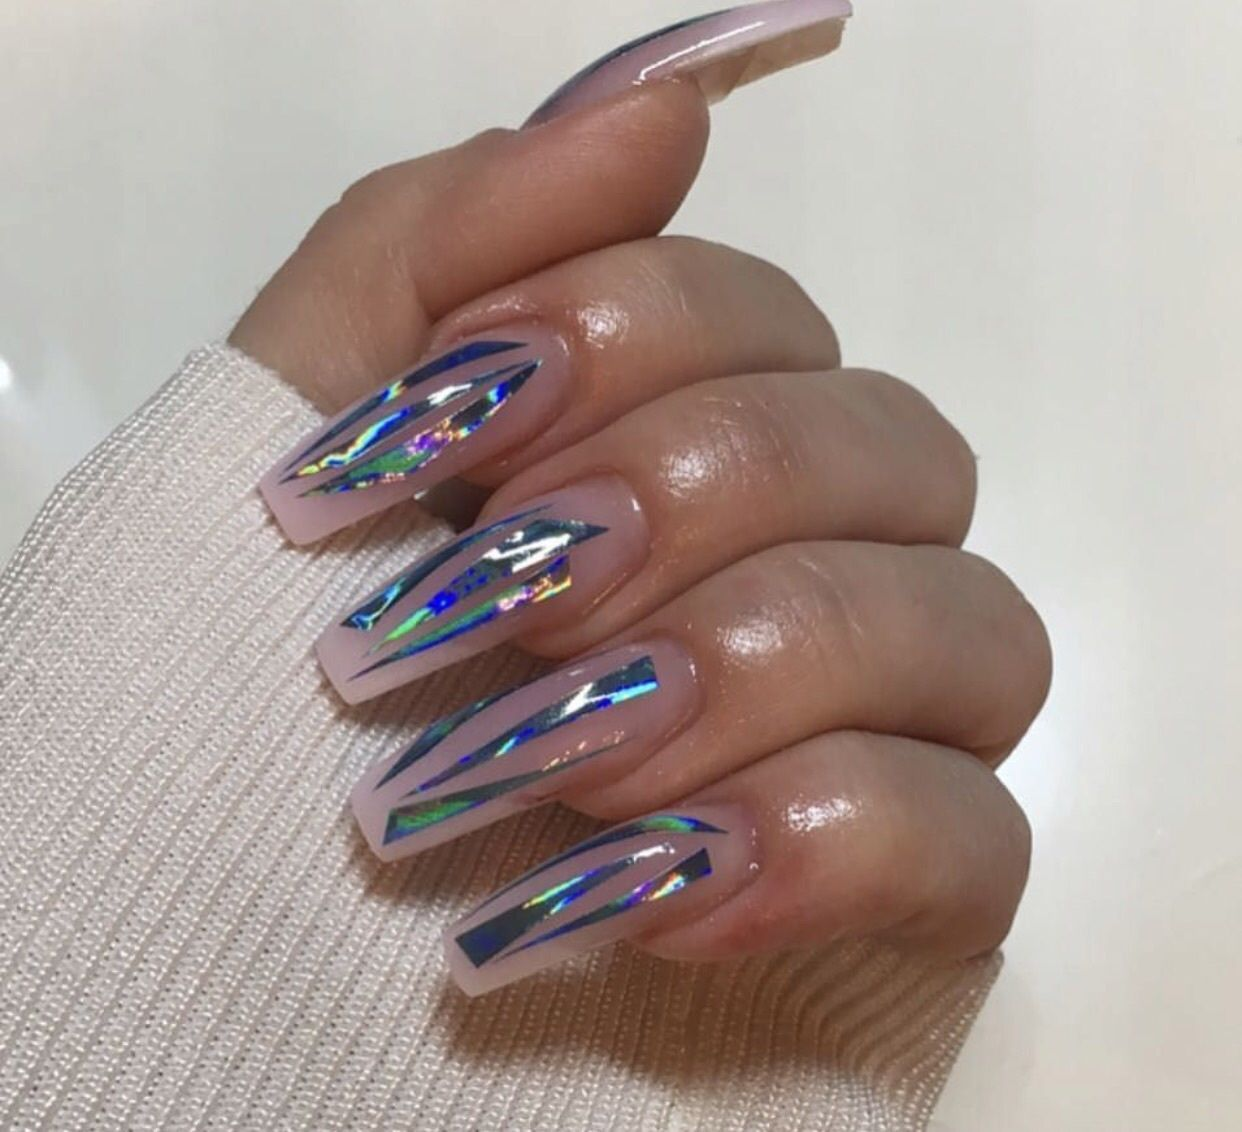 Pin by ✨JɑӀɑ✨ on Nαιlѕ ✨ | Pinterest | Nails inspiration, Coffin ...